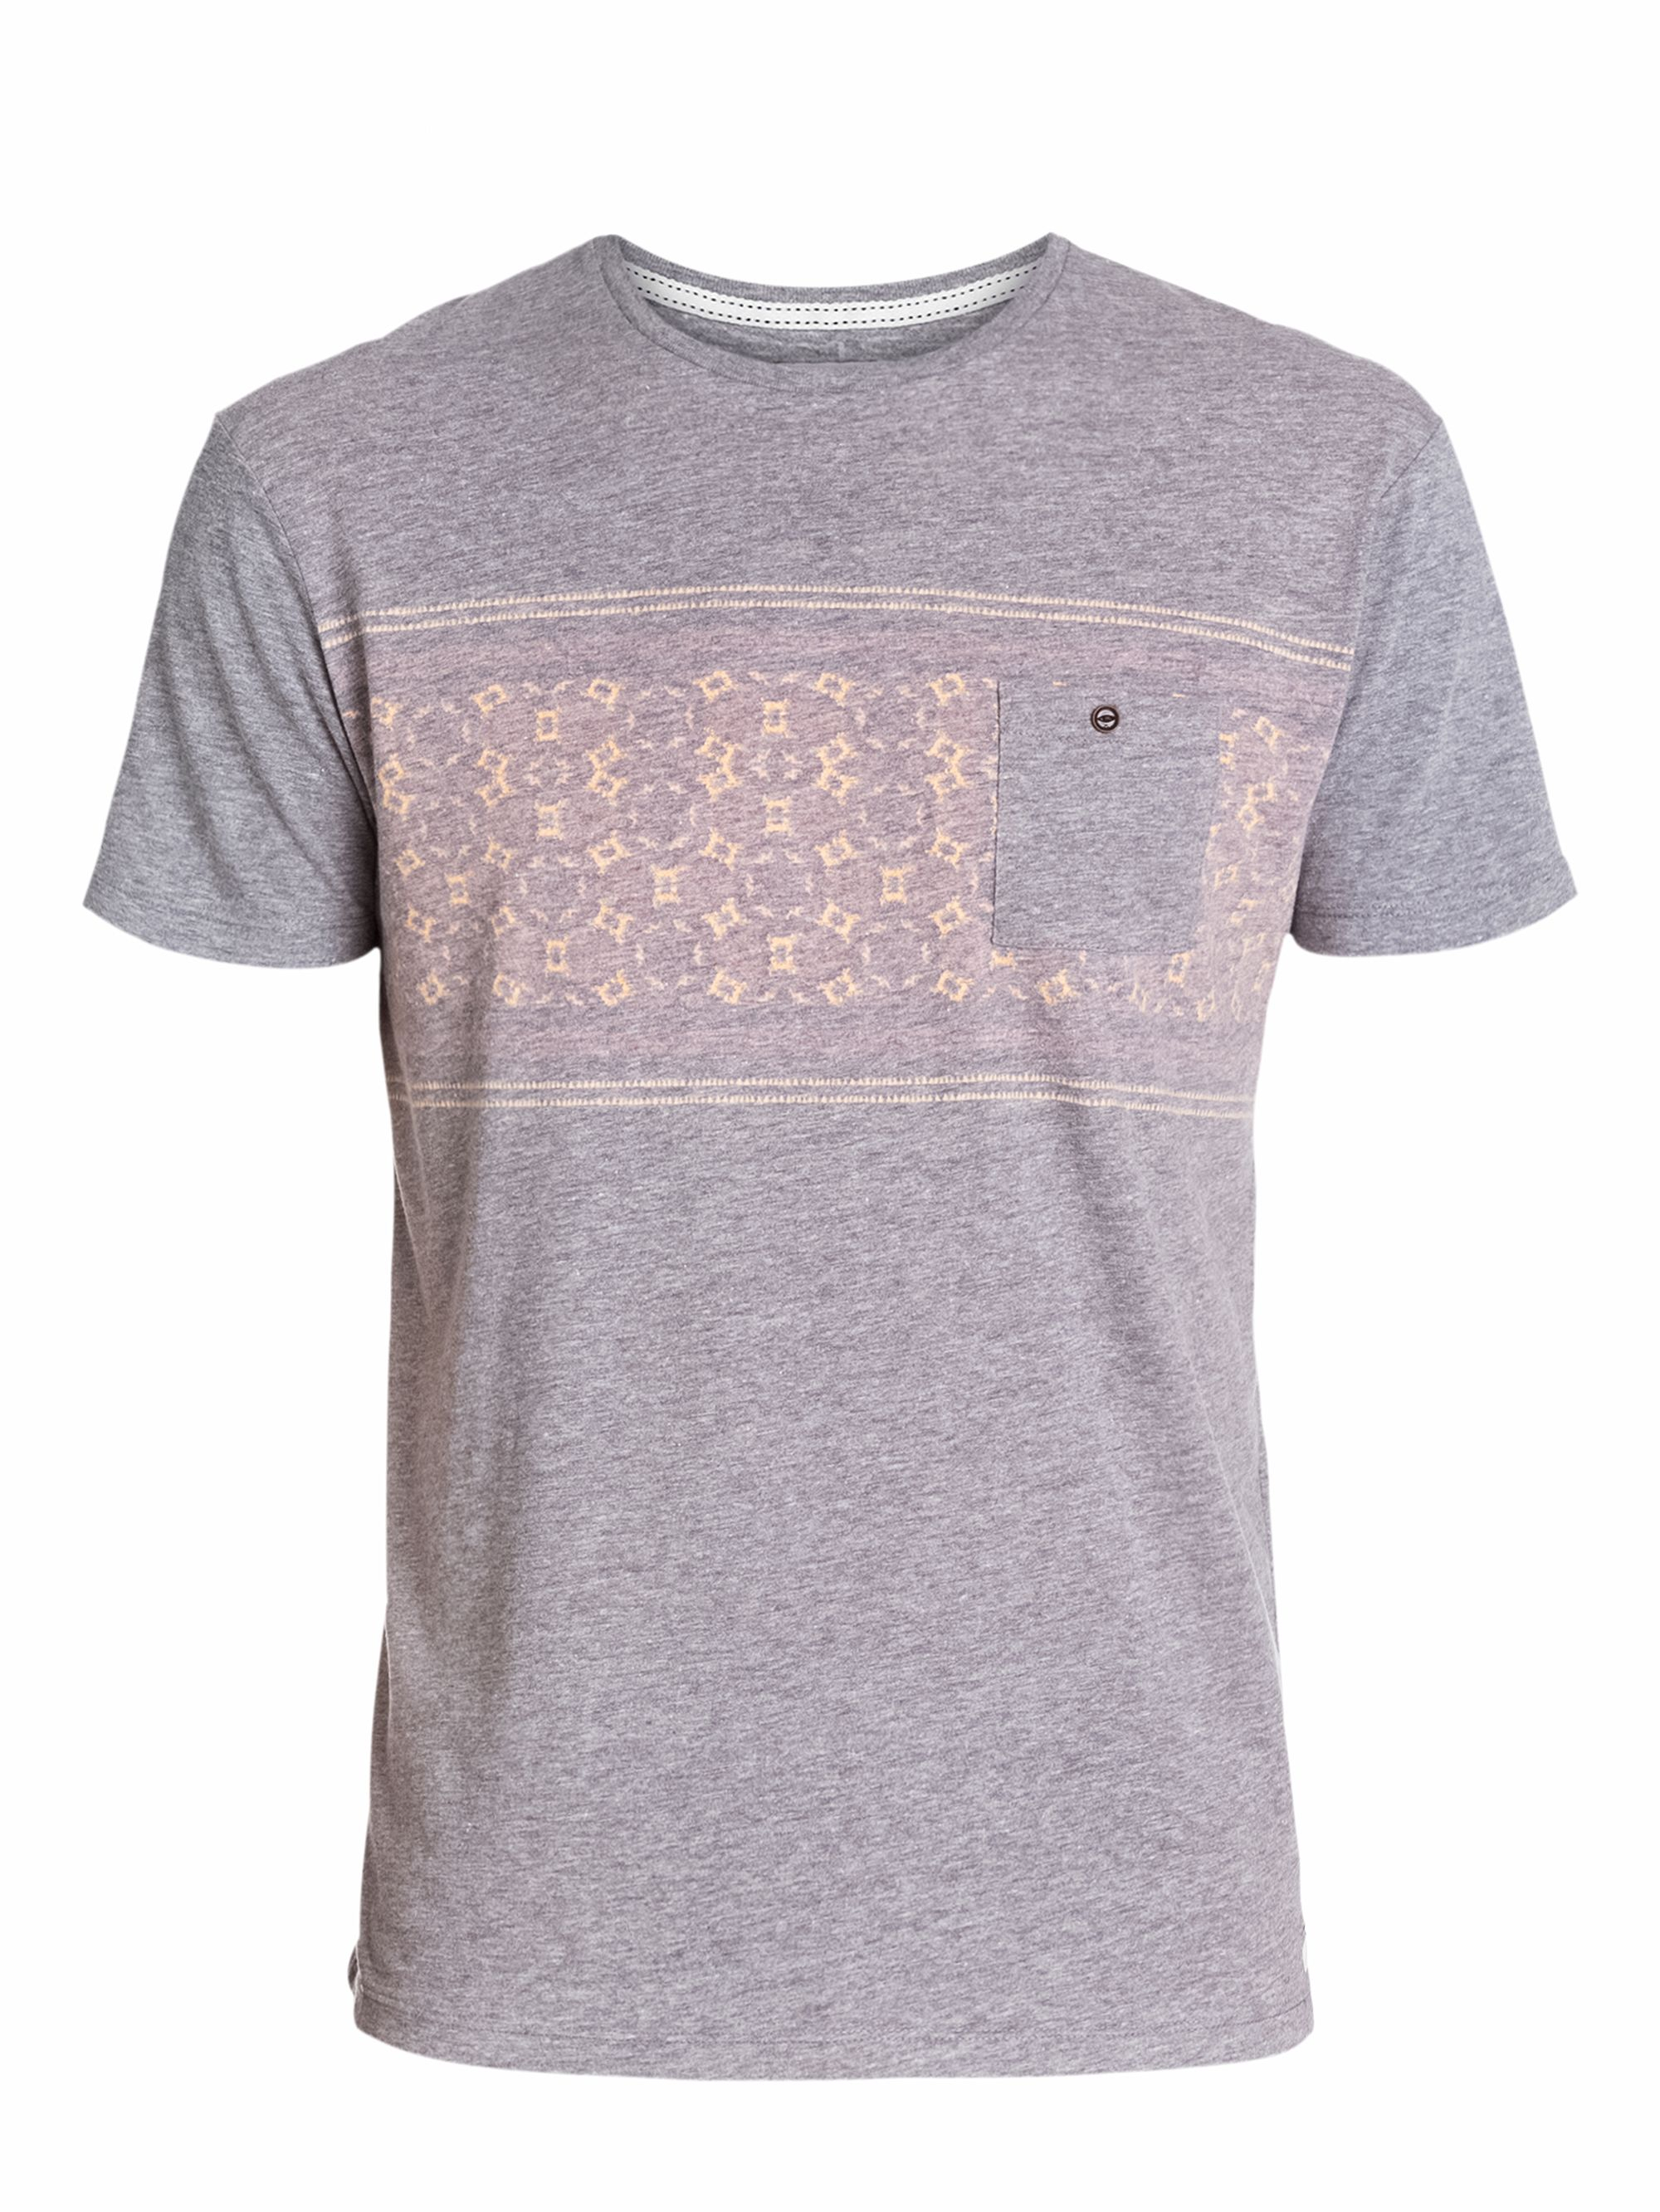 Quiksilver Pattern Crew Neck Slim Fit T Shirt In Gray For